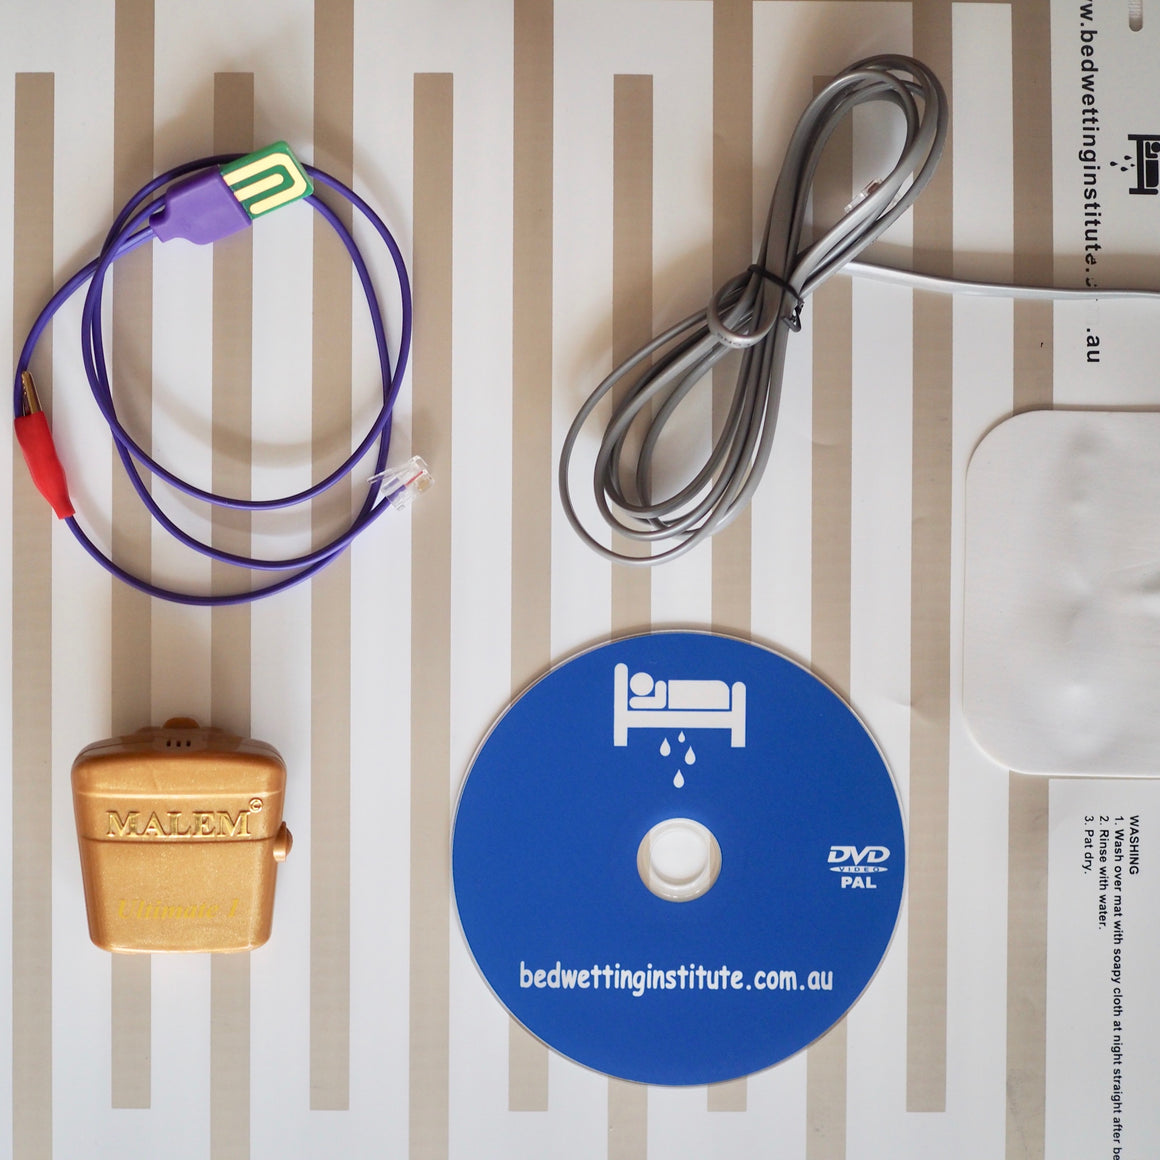 Malem Gold Ultimate Bed wetting Alarm + underpants sensor + alarm sensor mat + DVD